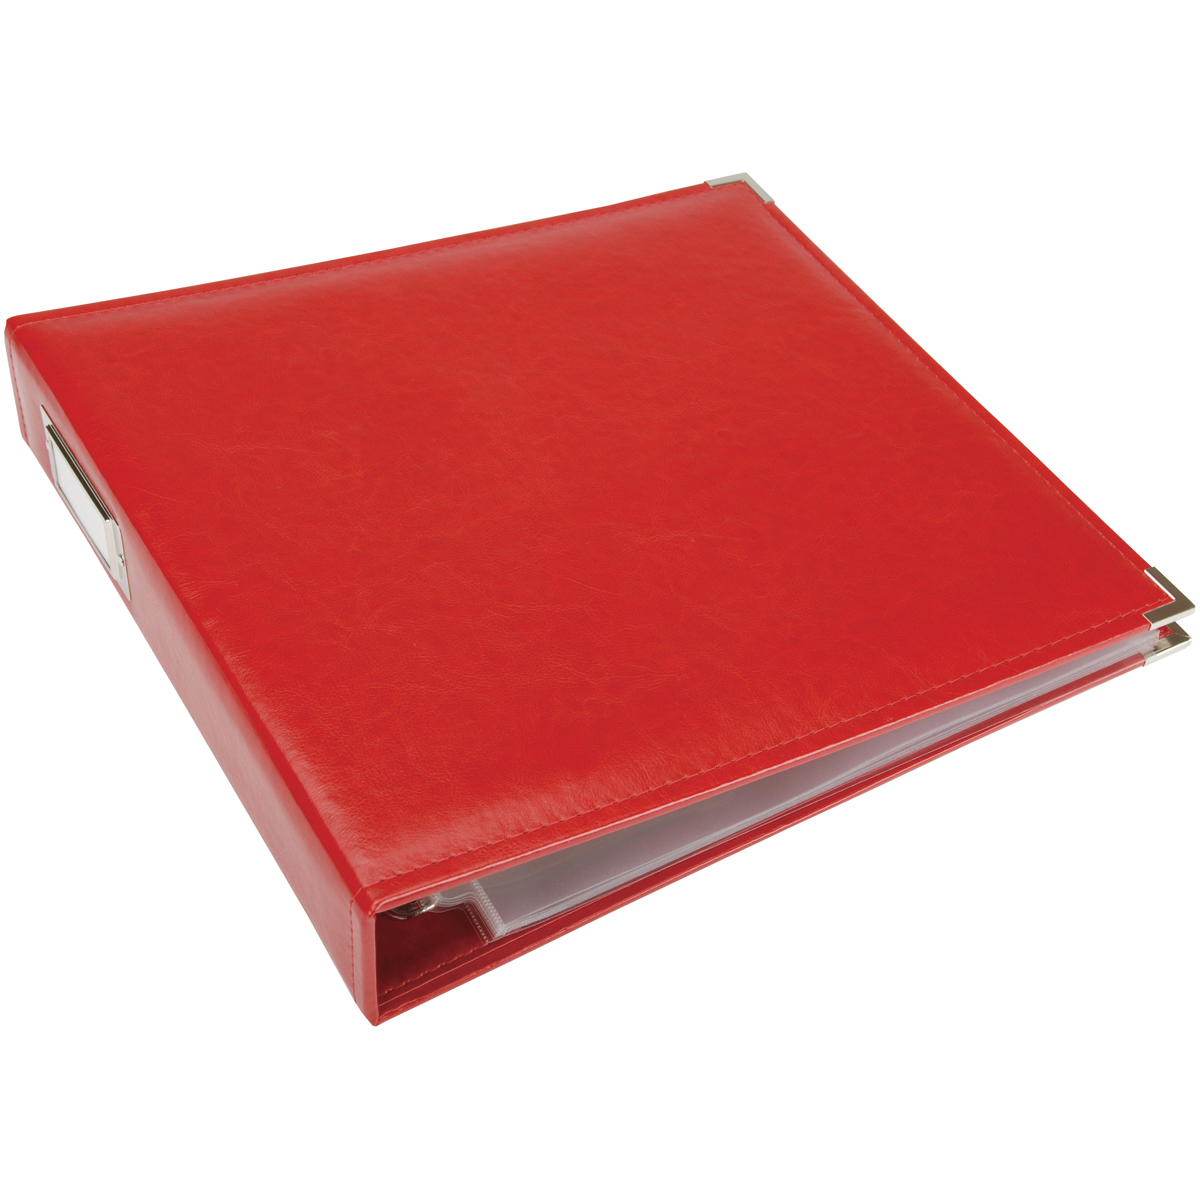 ALBUM-12X12 3-RING RED